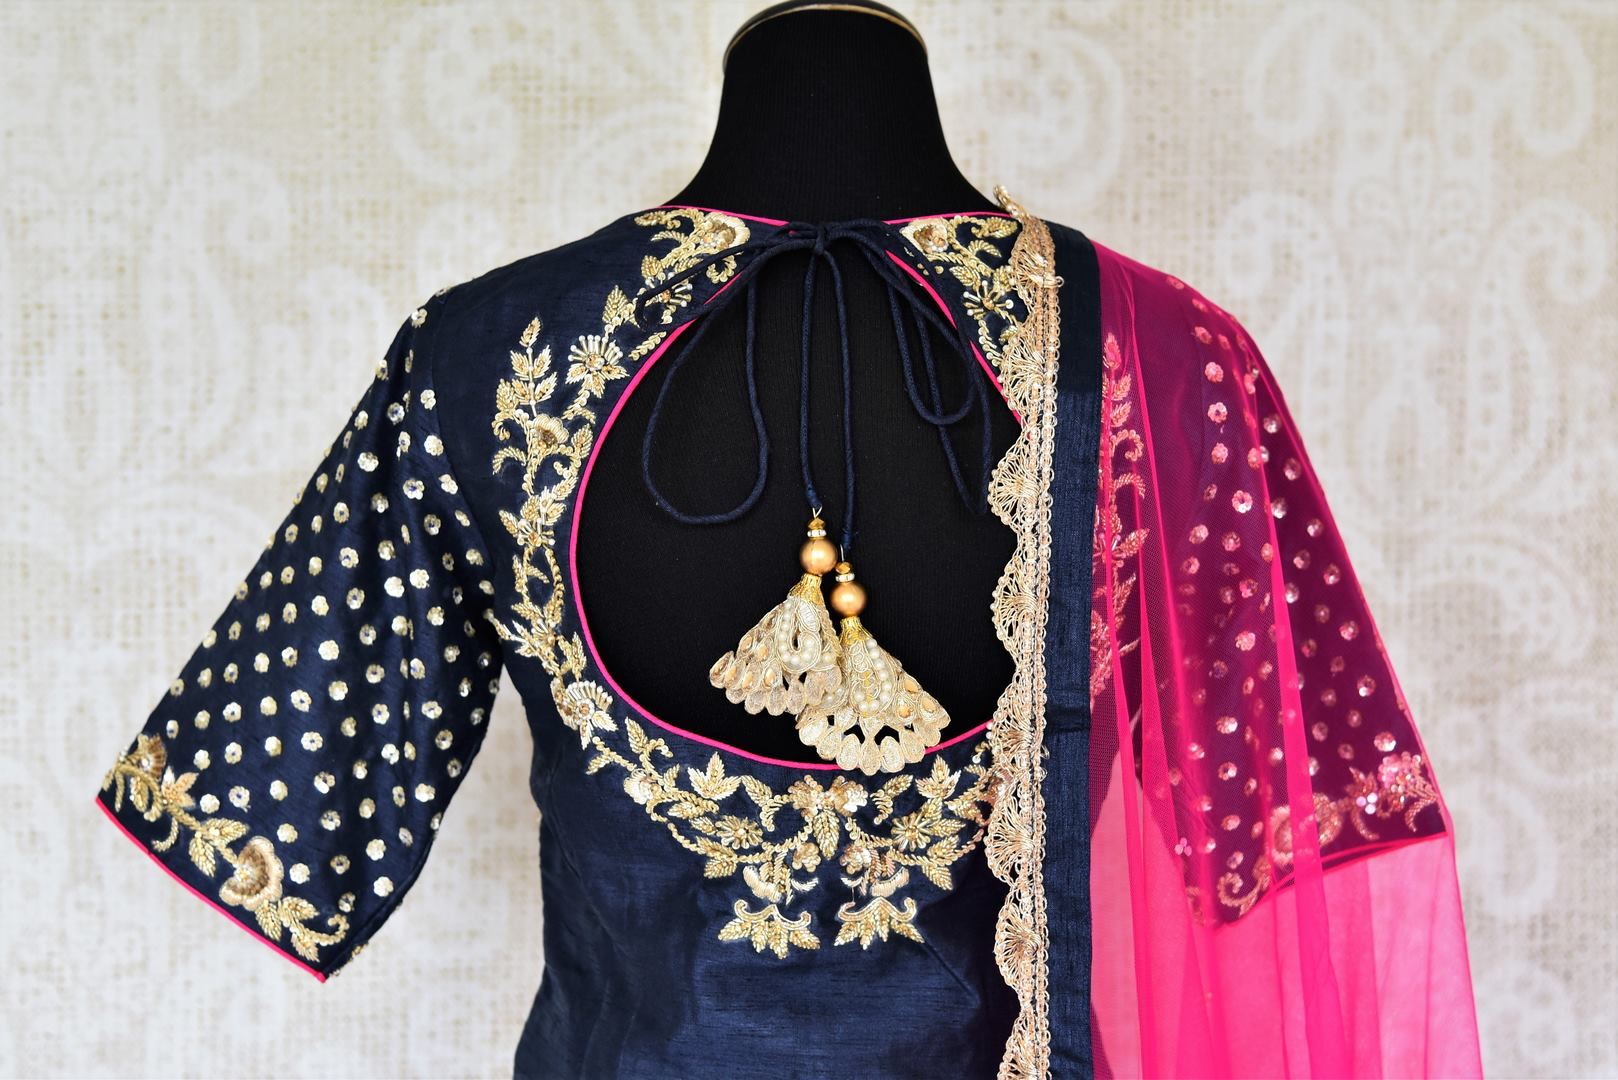 The Bollywood-inspired black raw silk embellished sharara with blue embroidered kurta is your go-to for weddings, festivals and family gatherings. Complete the look with a contrasting pink embellished sheer dupatta. Shop beautiful Indian designer dresses, suits, lehengas, online or visit Pure Elegance store, USA. -suit back